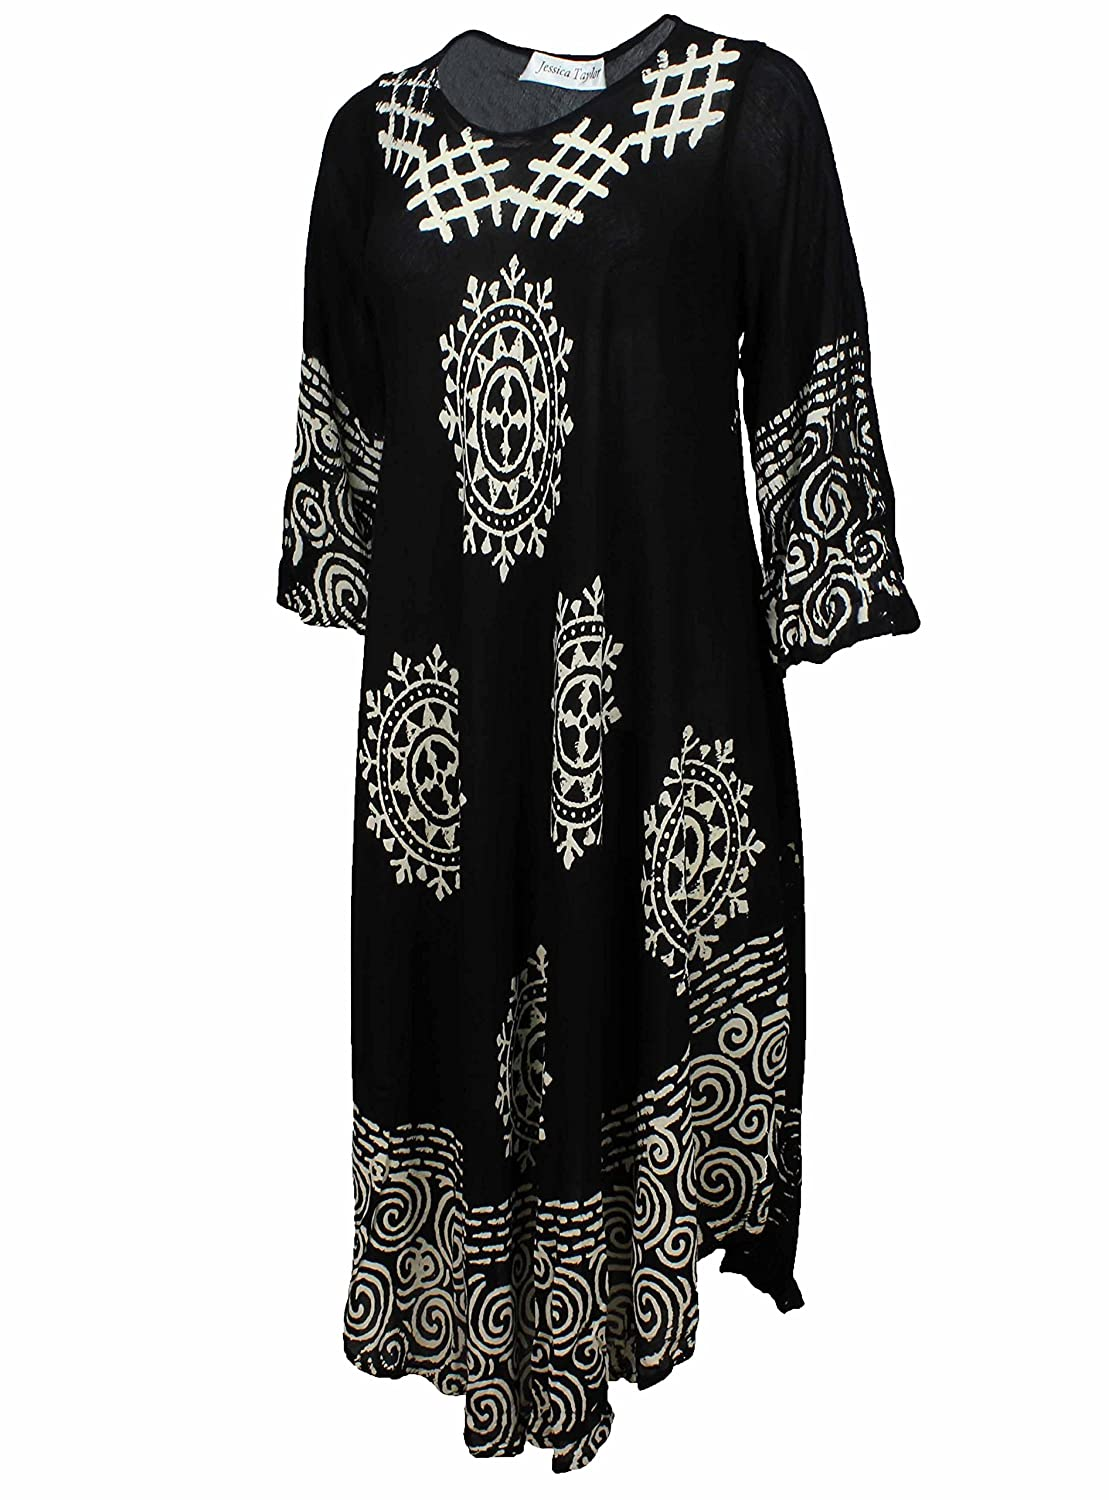 Jessica Taylor Womens Plus Size Long Sleeve Cover up Dress